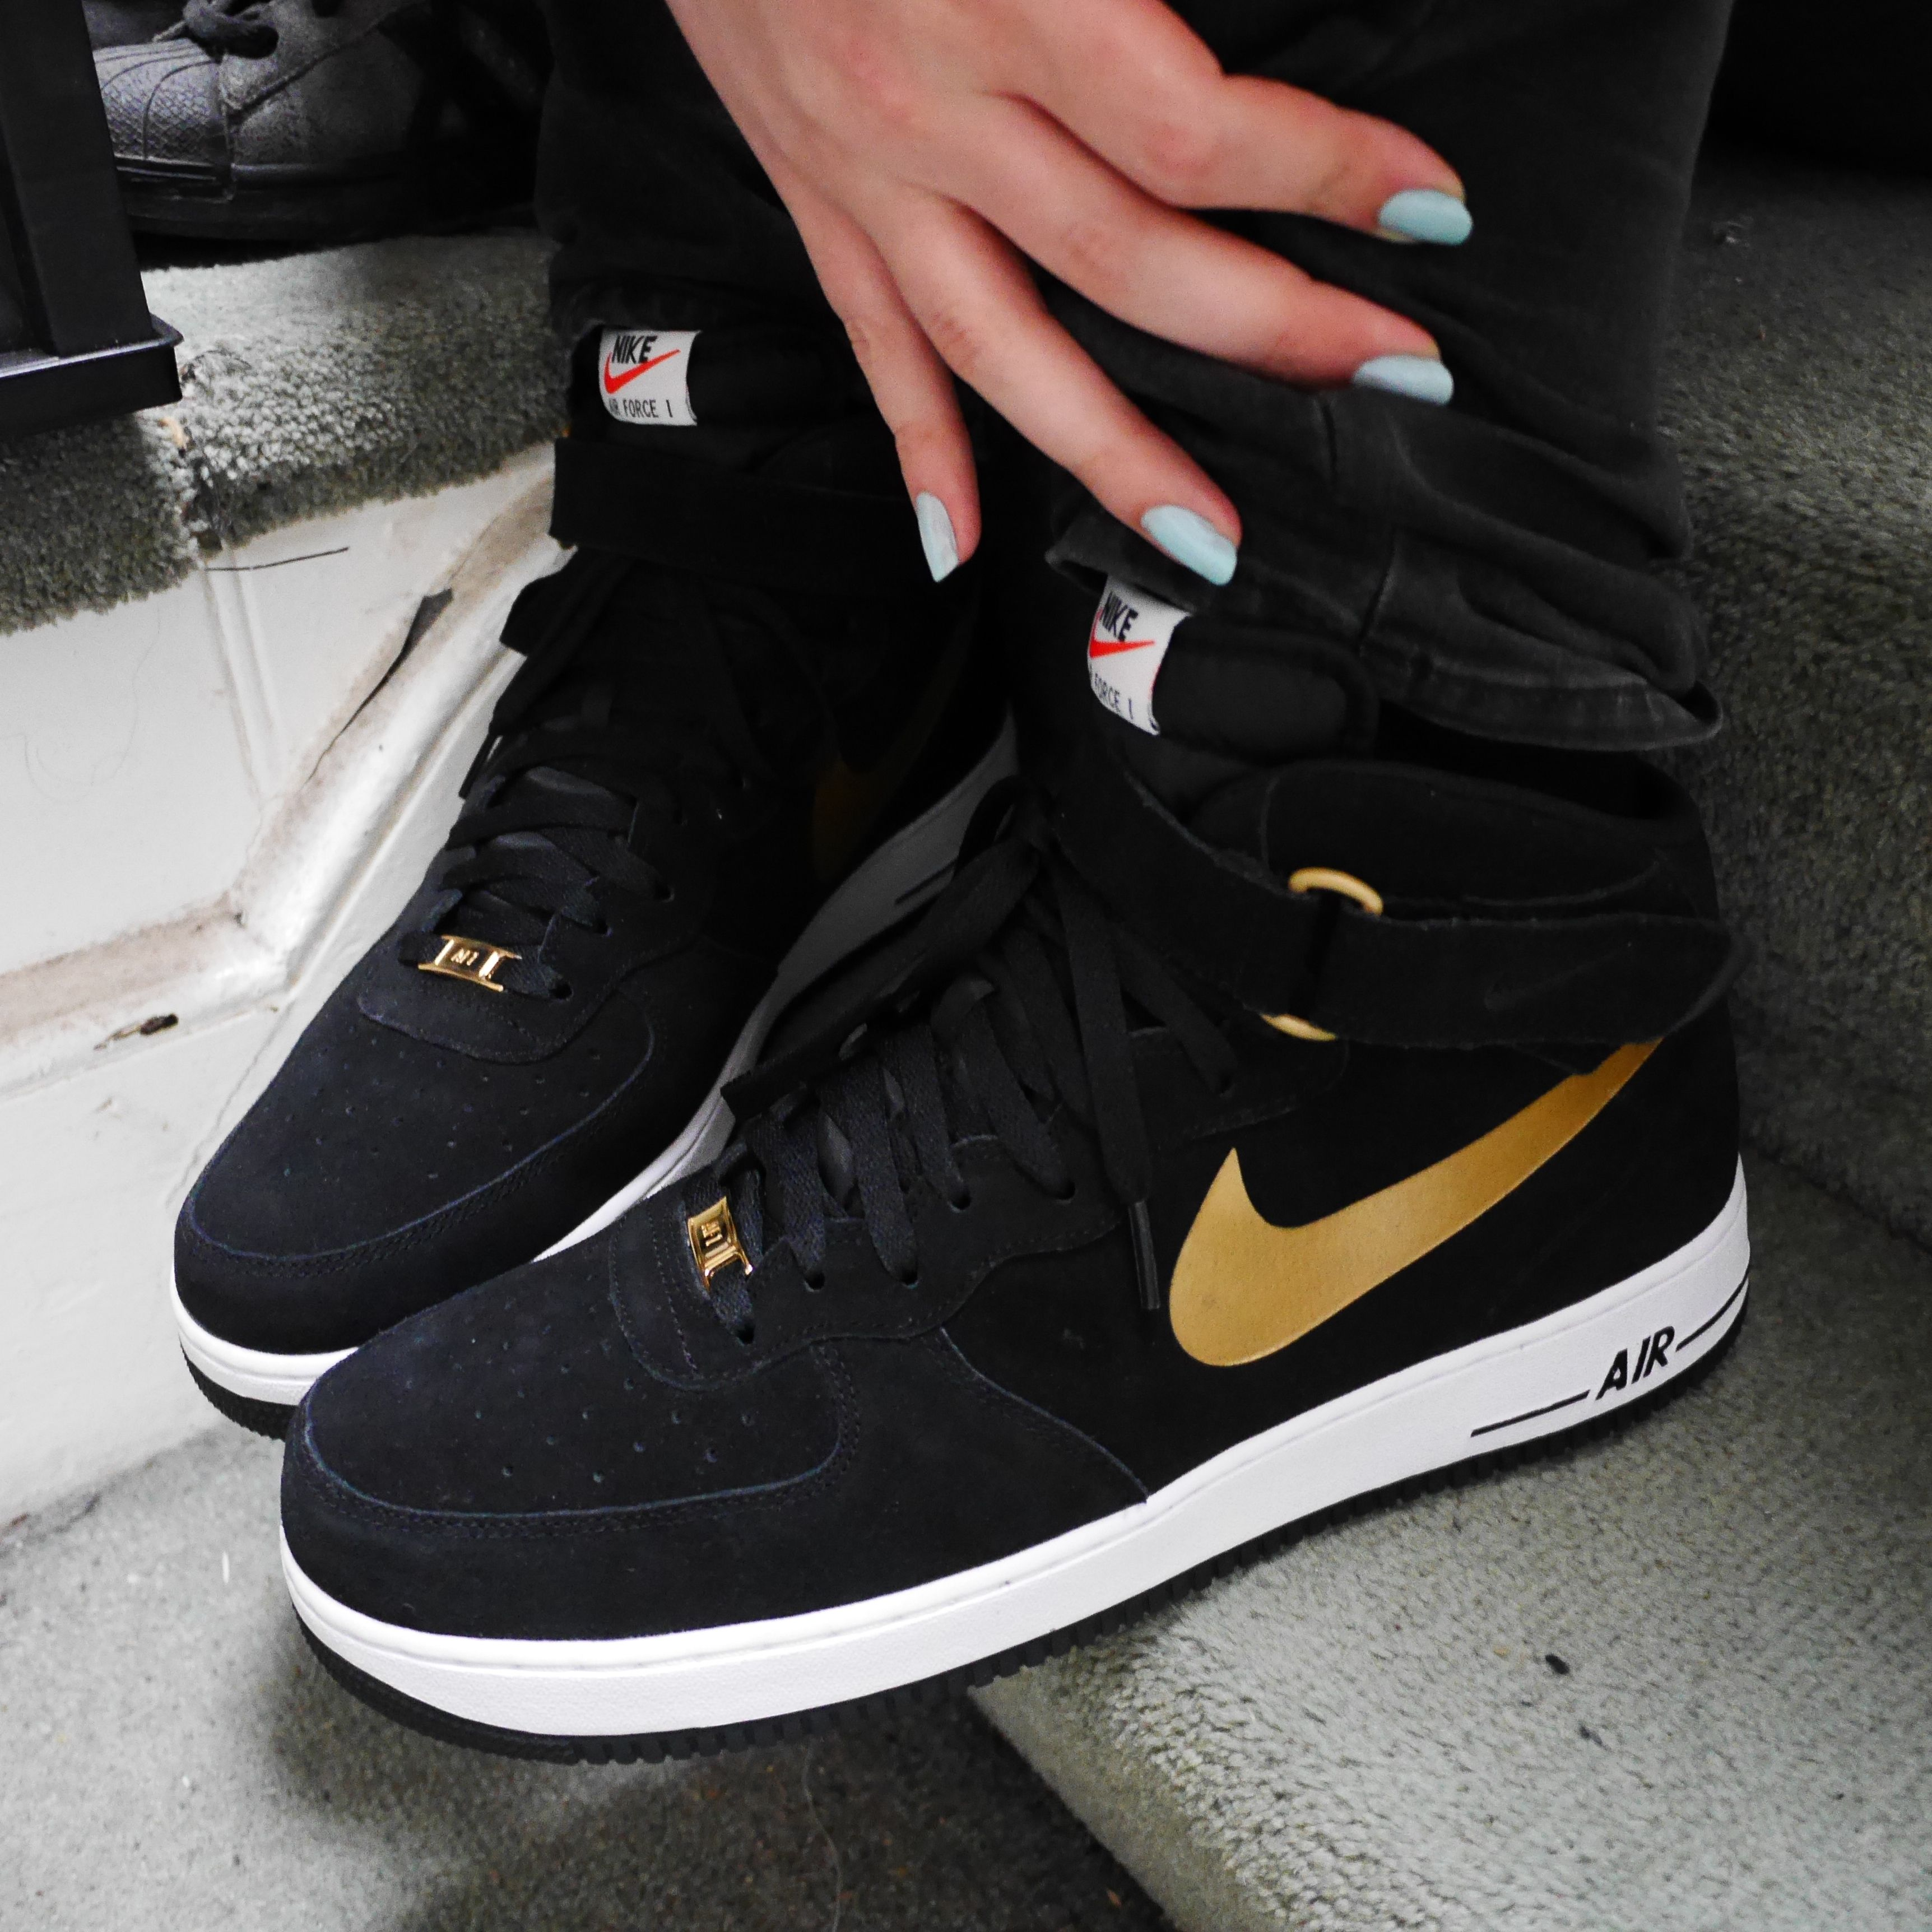 new arrival b4408 41e78 Nike Air Force 1 Mid (Black Suede Metallic Gold)